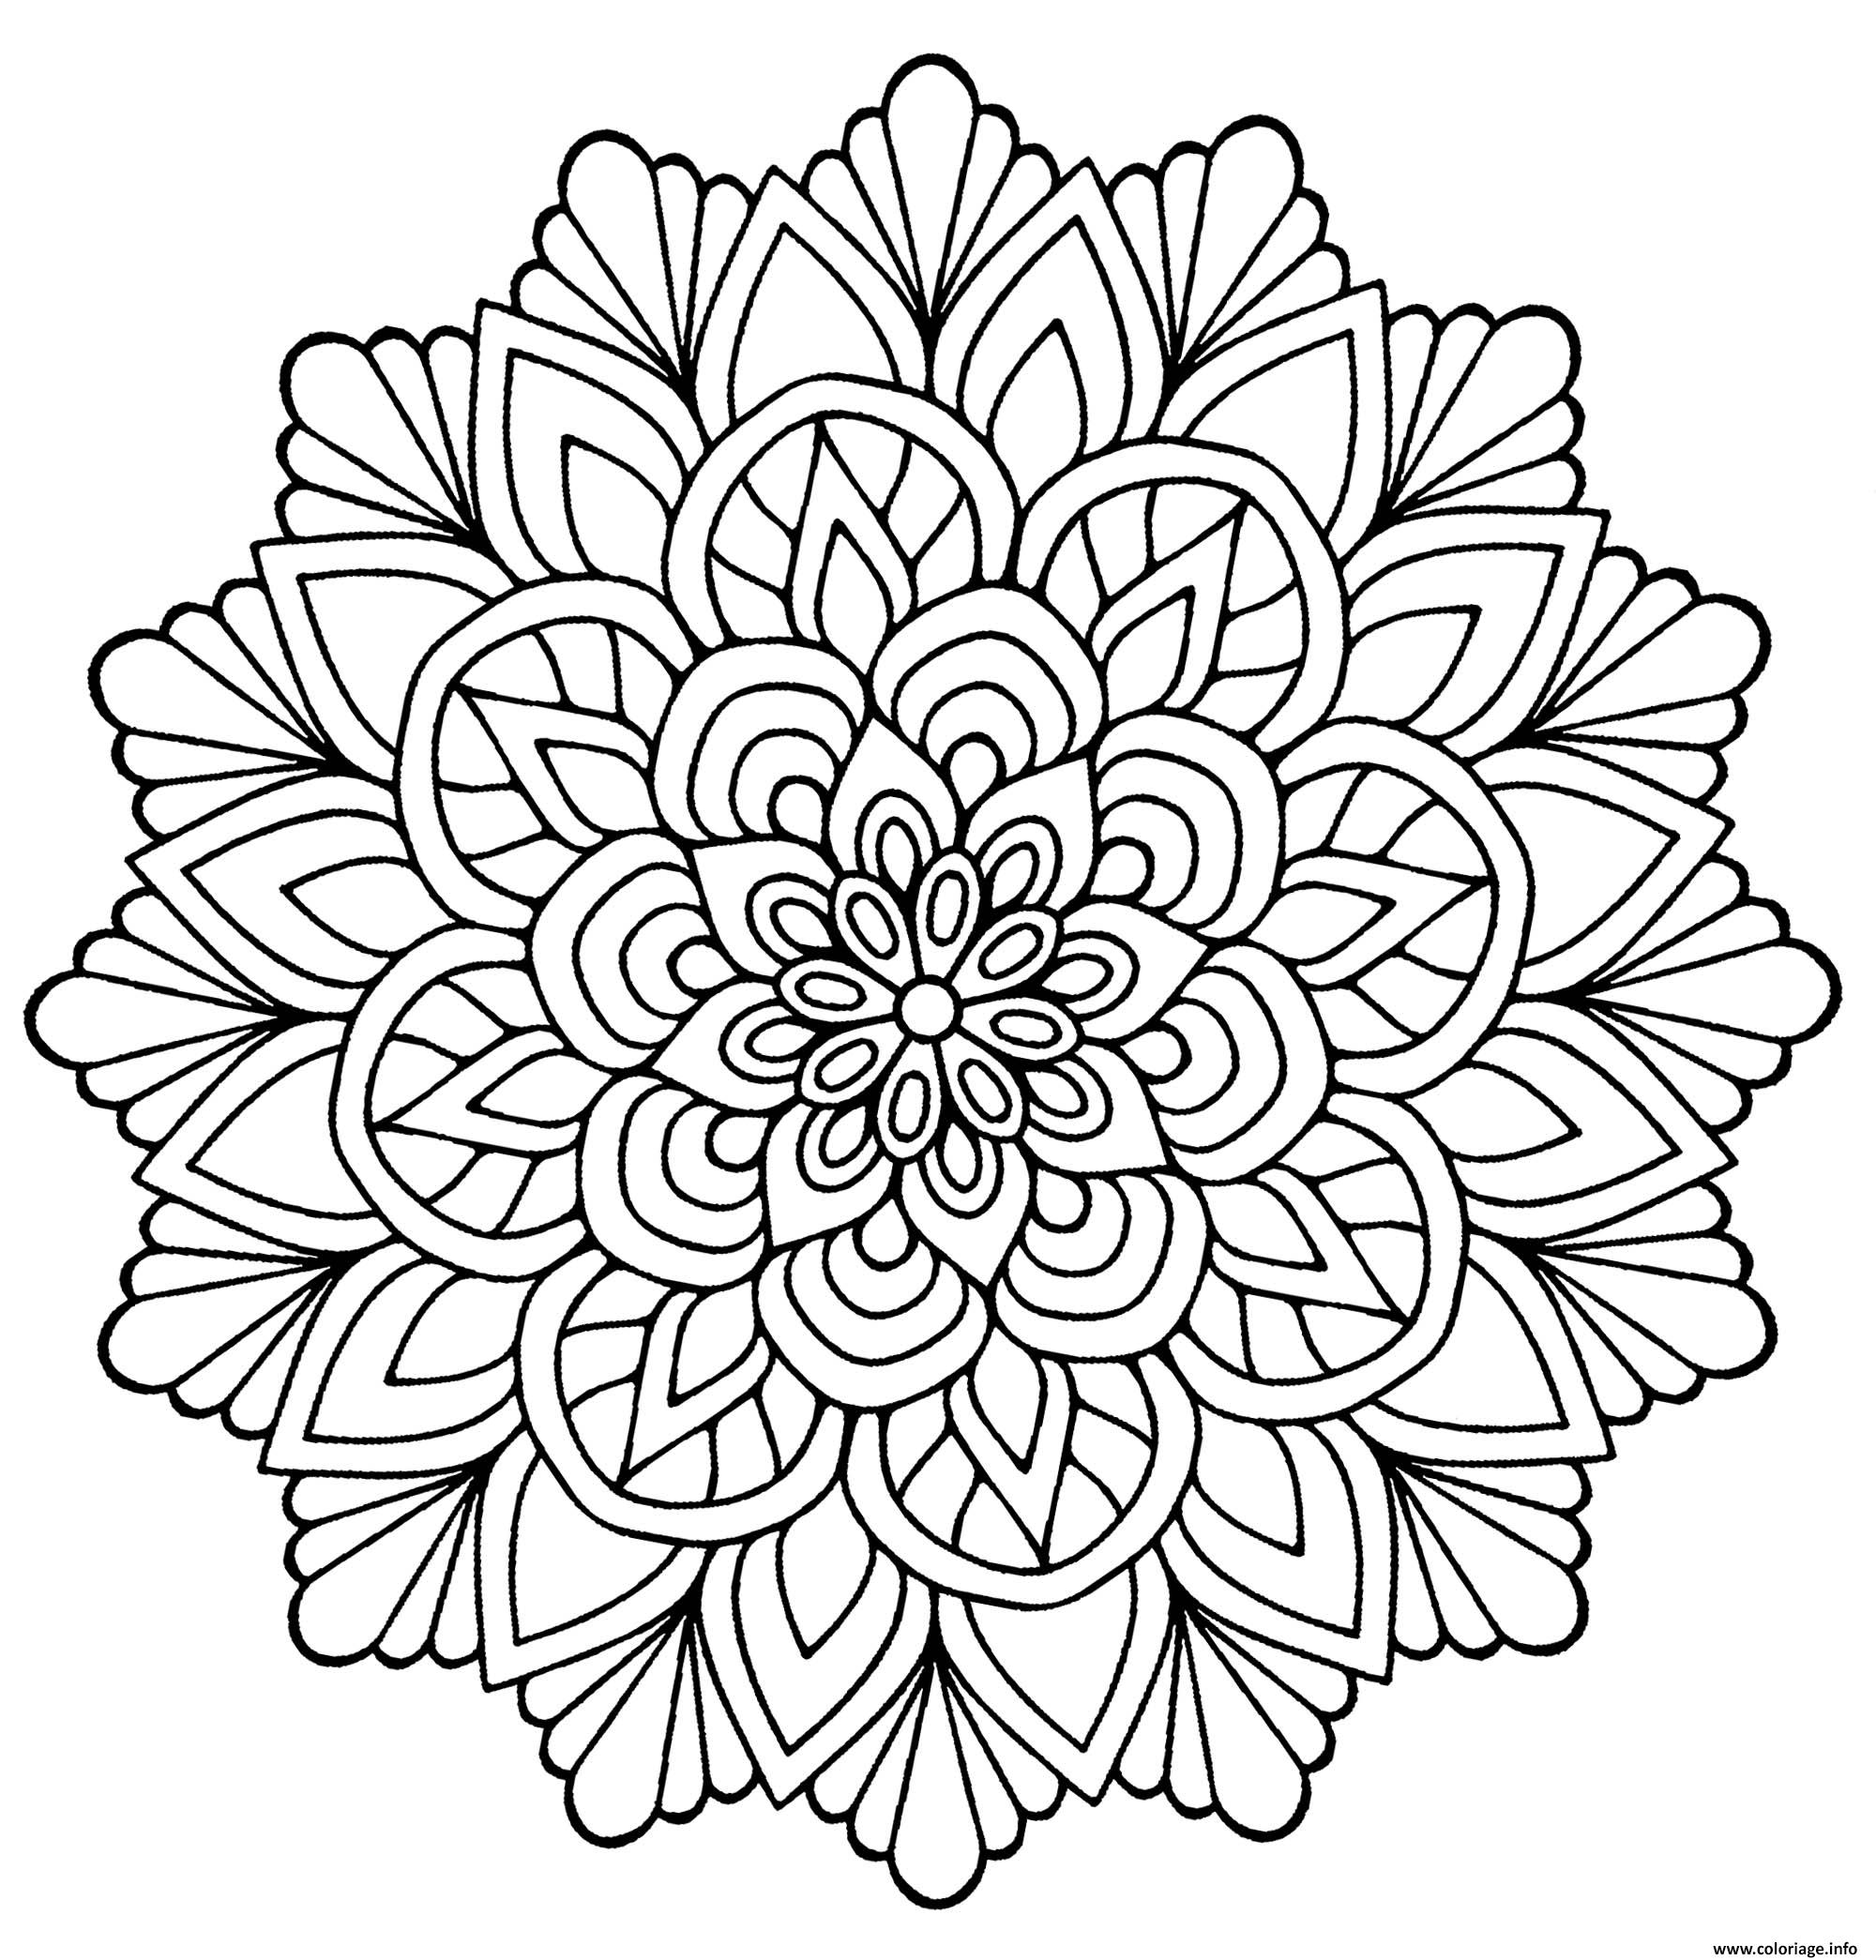 coloriage mandala fleur avec feuilles dessin. Black Bedroom Furniture Sets. Home Design Ideas